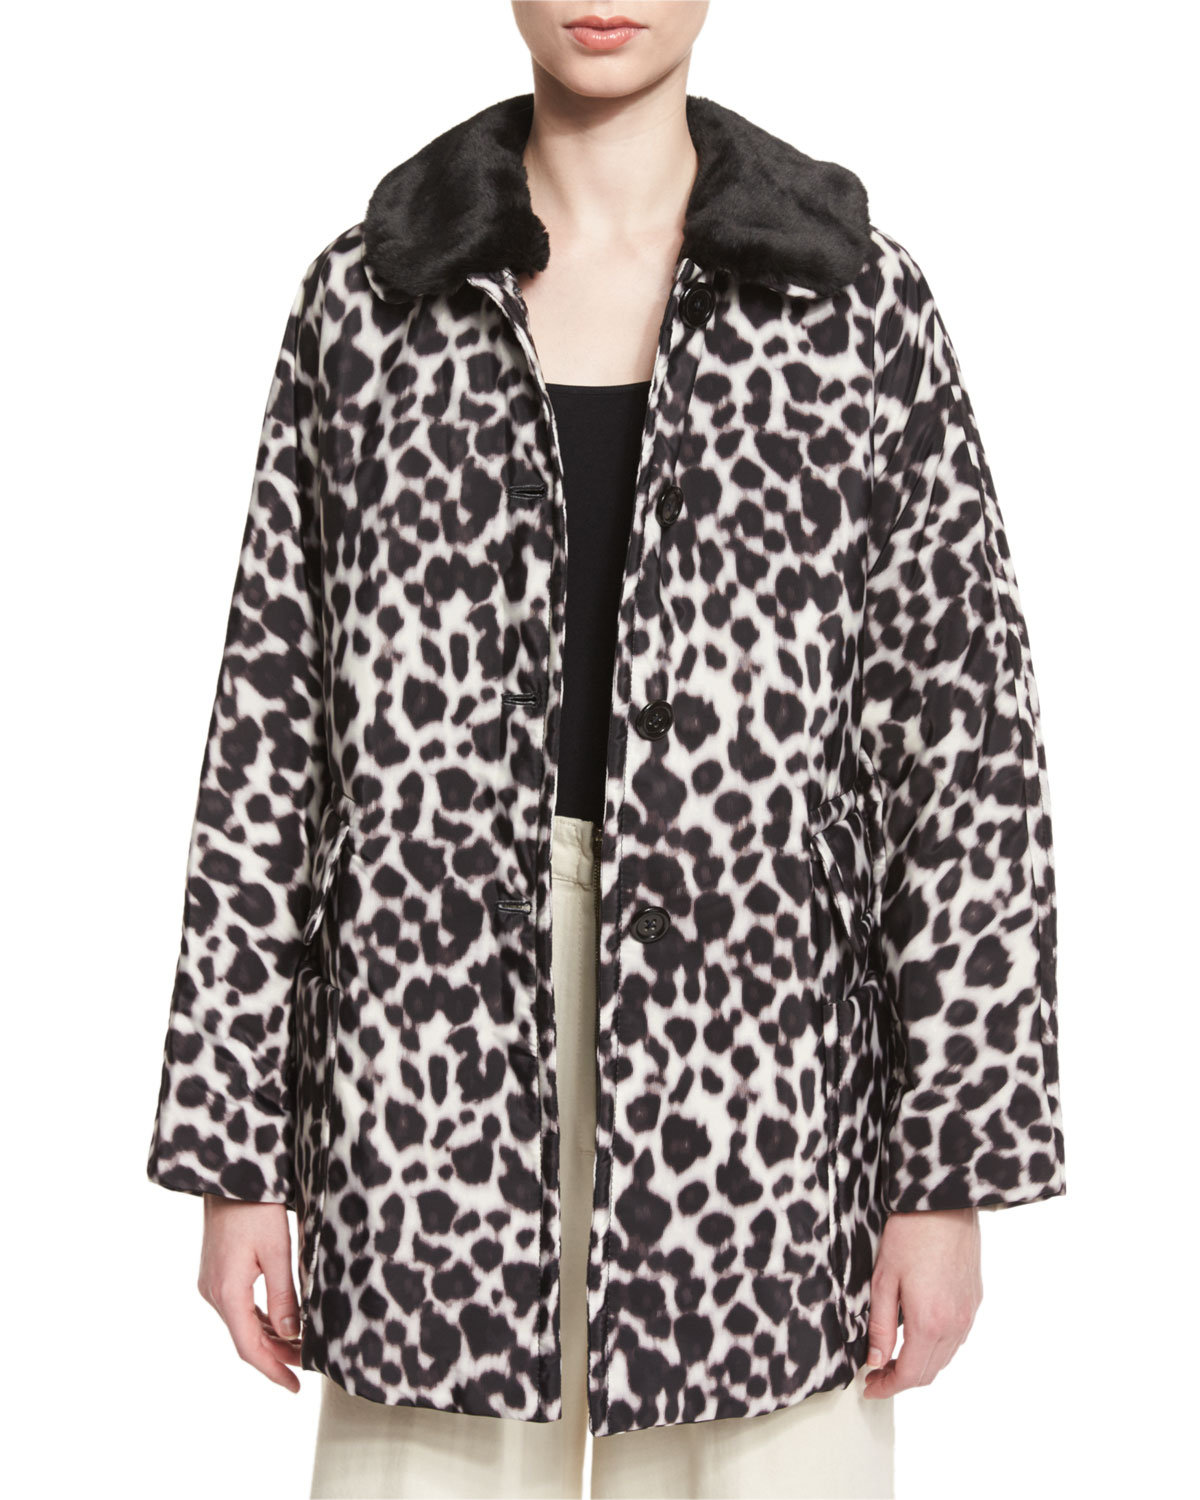 656eea6f76fe Marc Jacobs Leopard-Print Coat with Faux-Fur Collar, Ivory/Multi ...